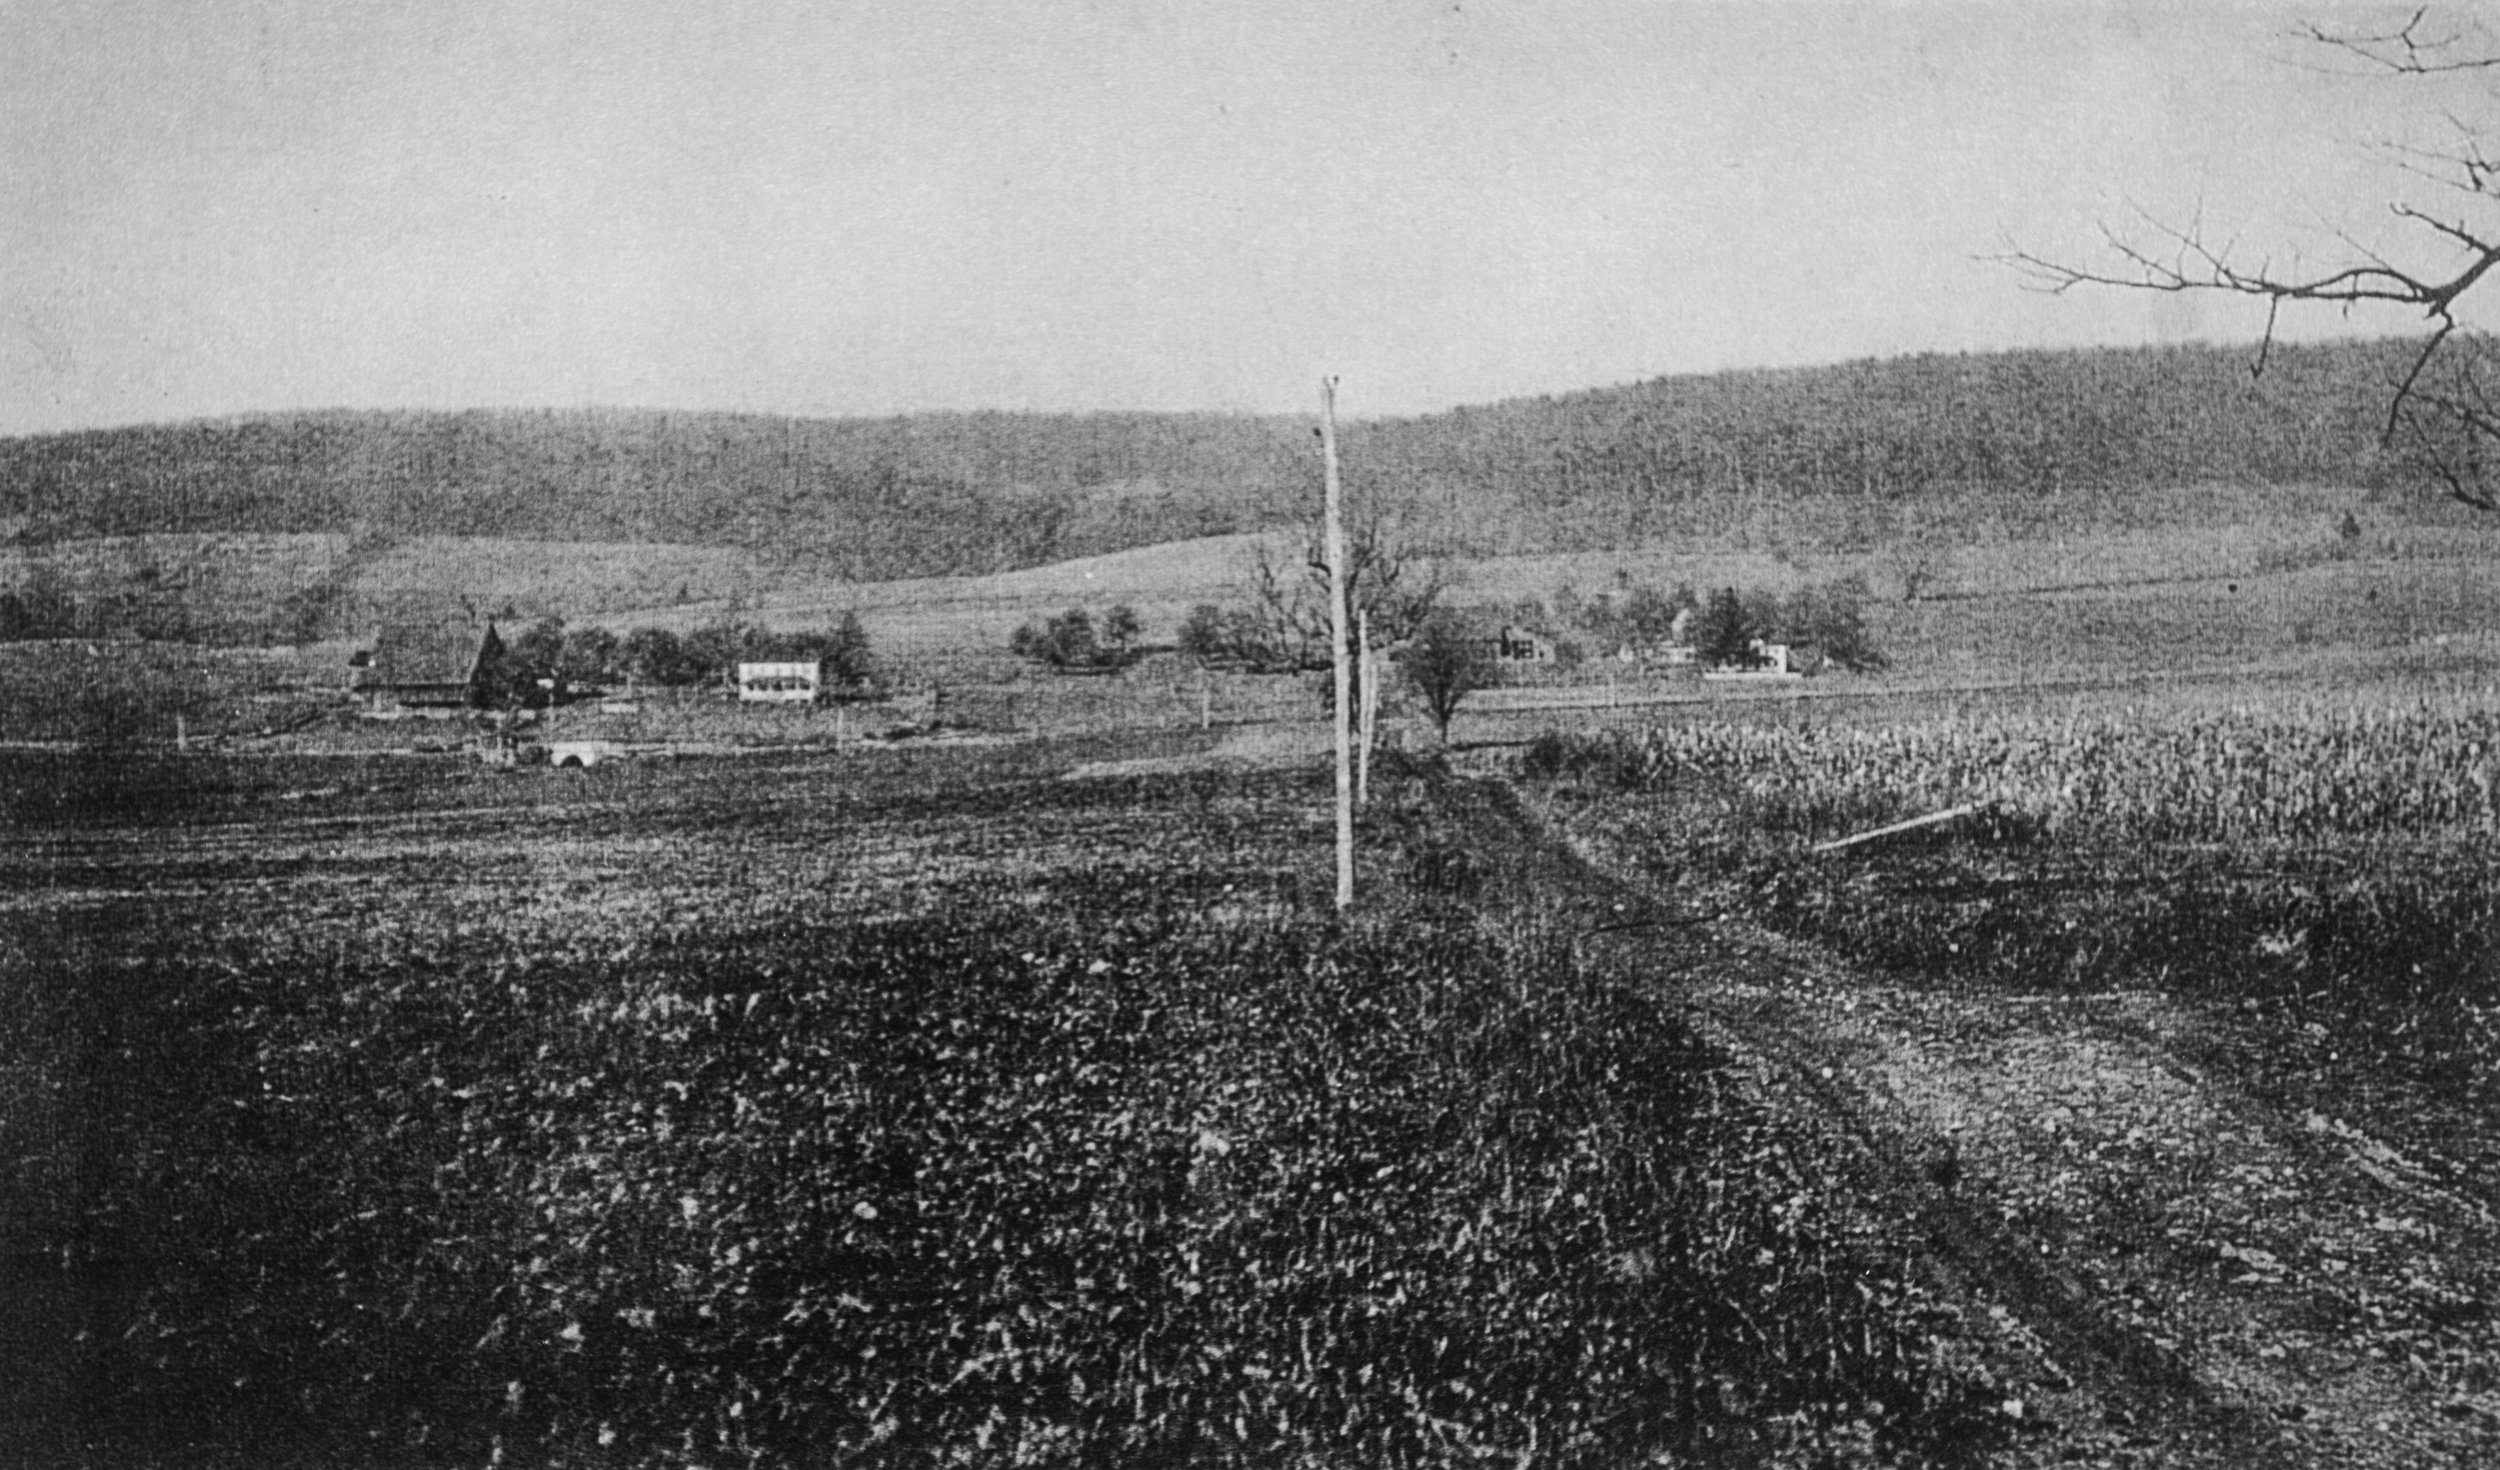 View from Smith Rd towards 550 in 1915.